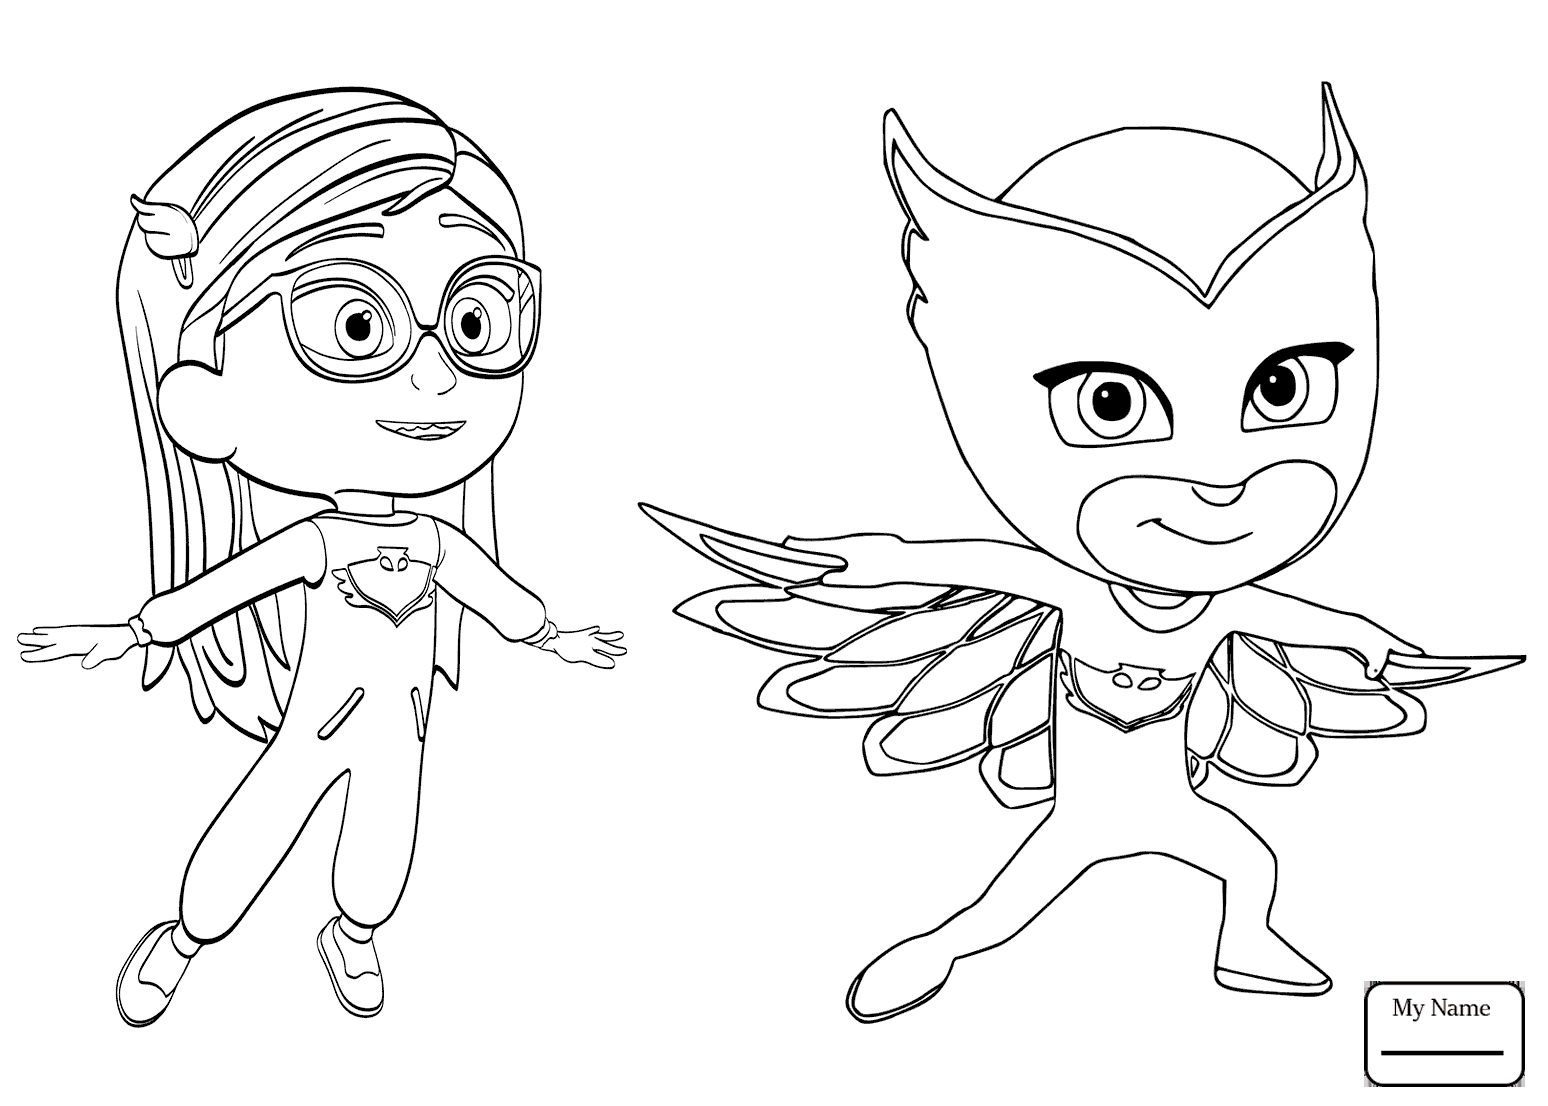 Pj Mask Coloring Pages At Getcolorings